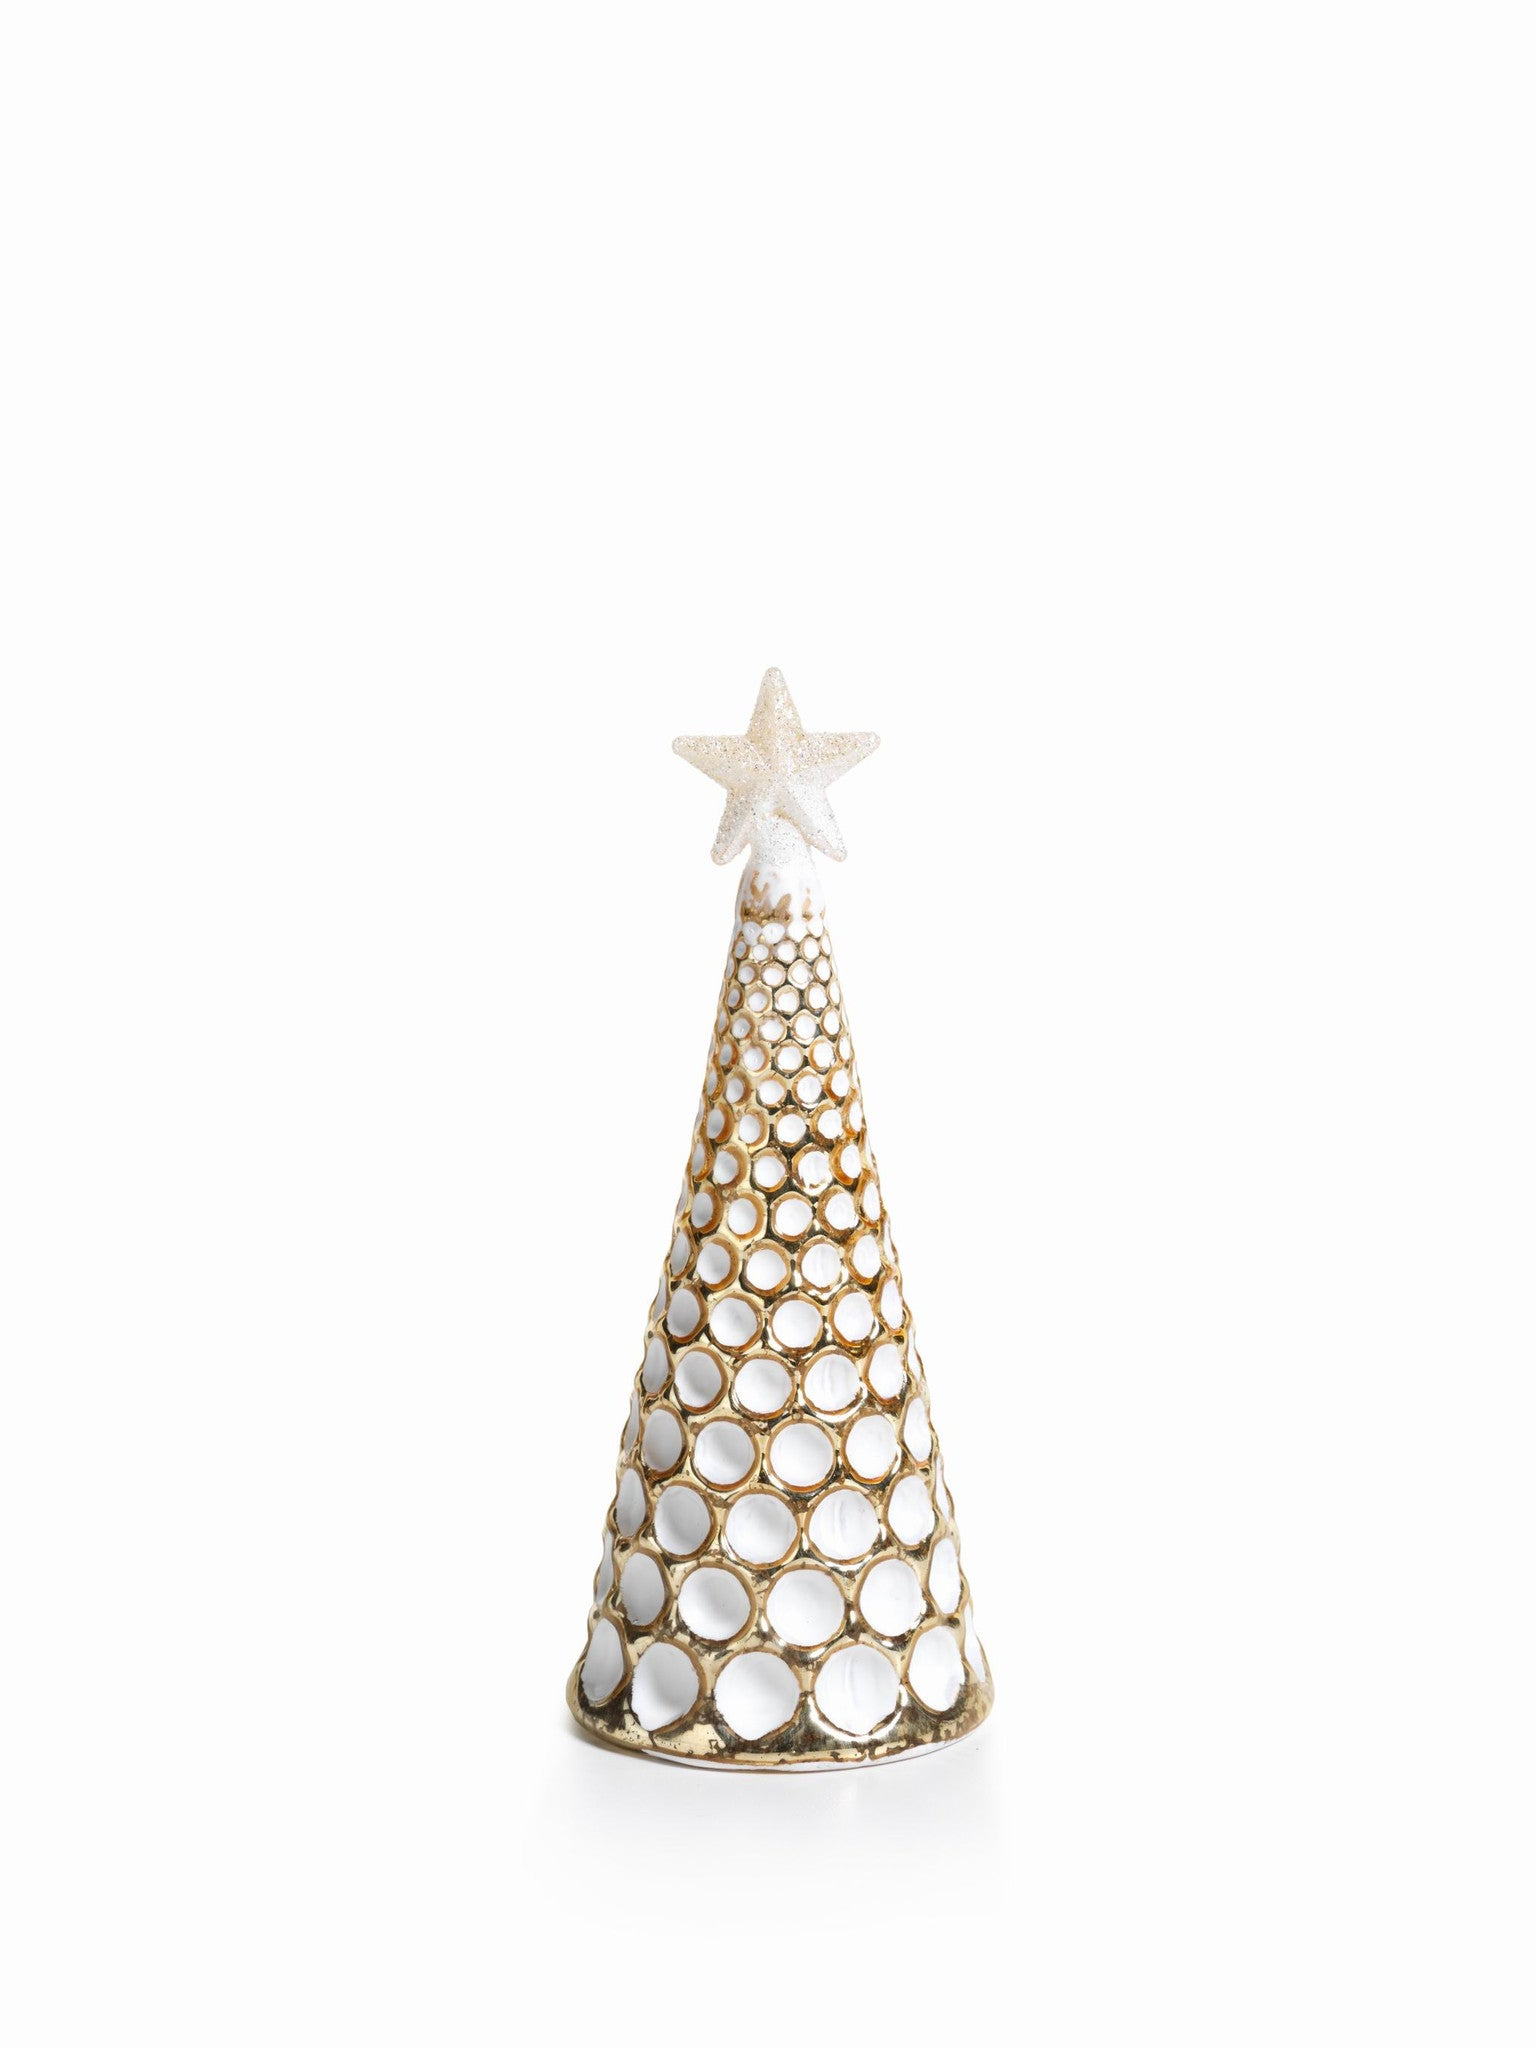 LED Glass Decorative Tree - Gold - Set of 6 - Medium / Dimple Cut - CARLYLE AVENUE - 16